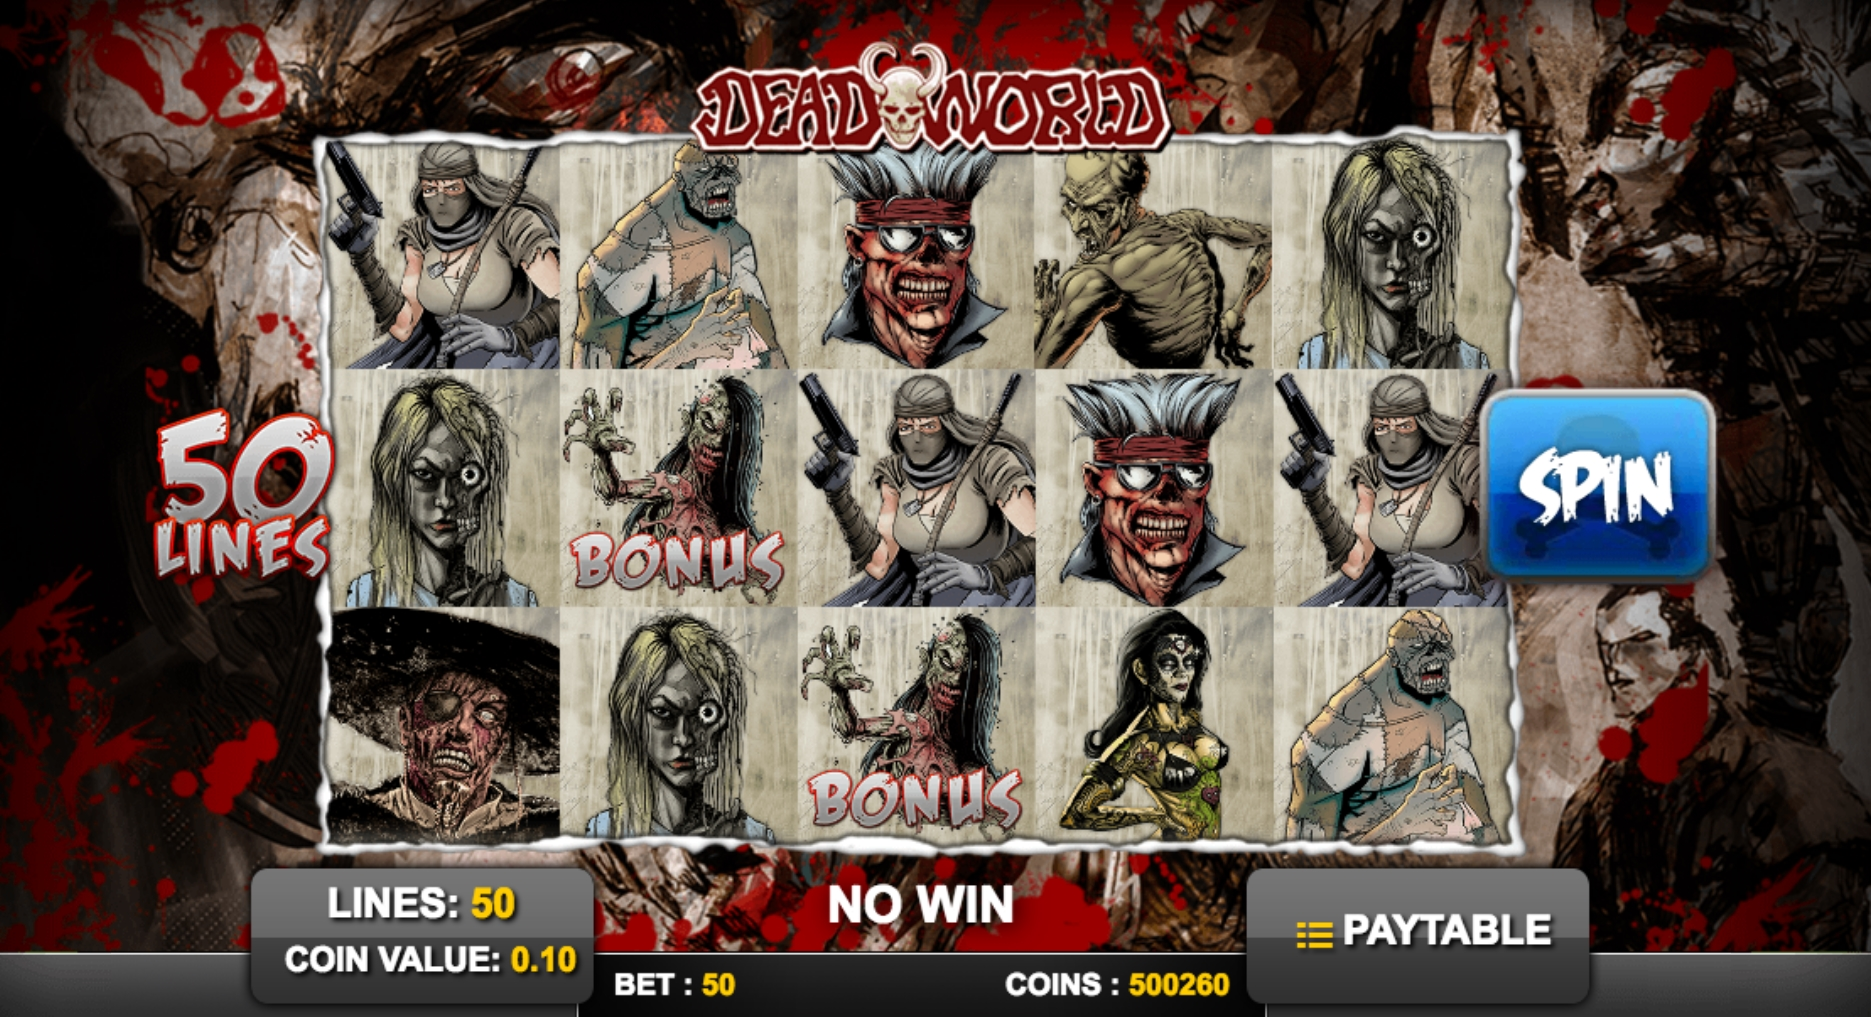 Zombies-and-Deadworld-Slot